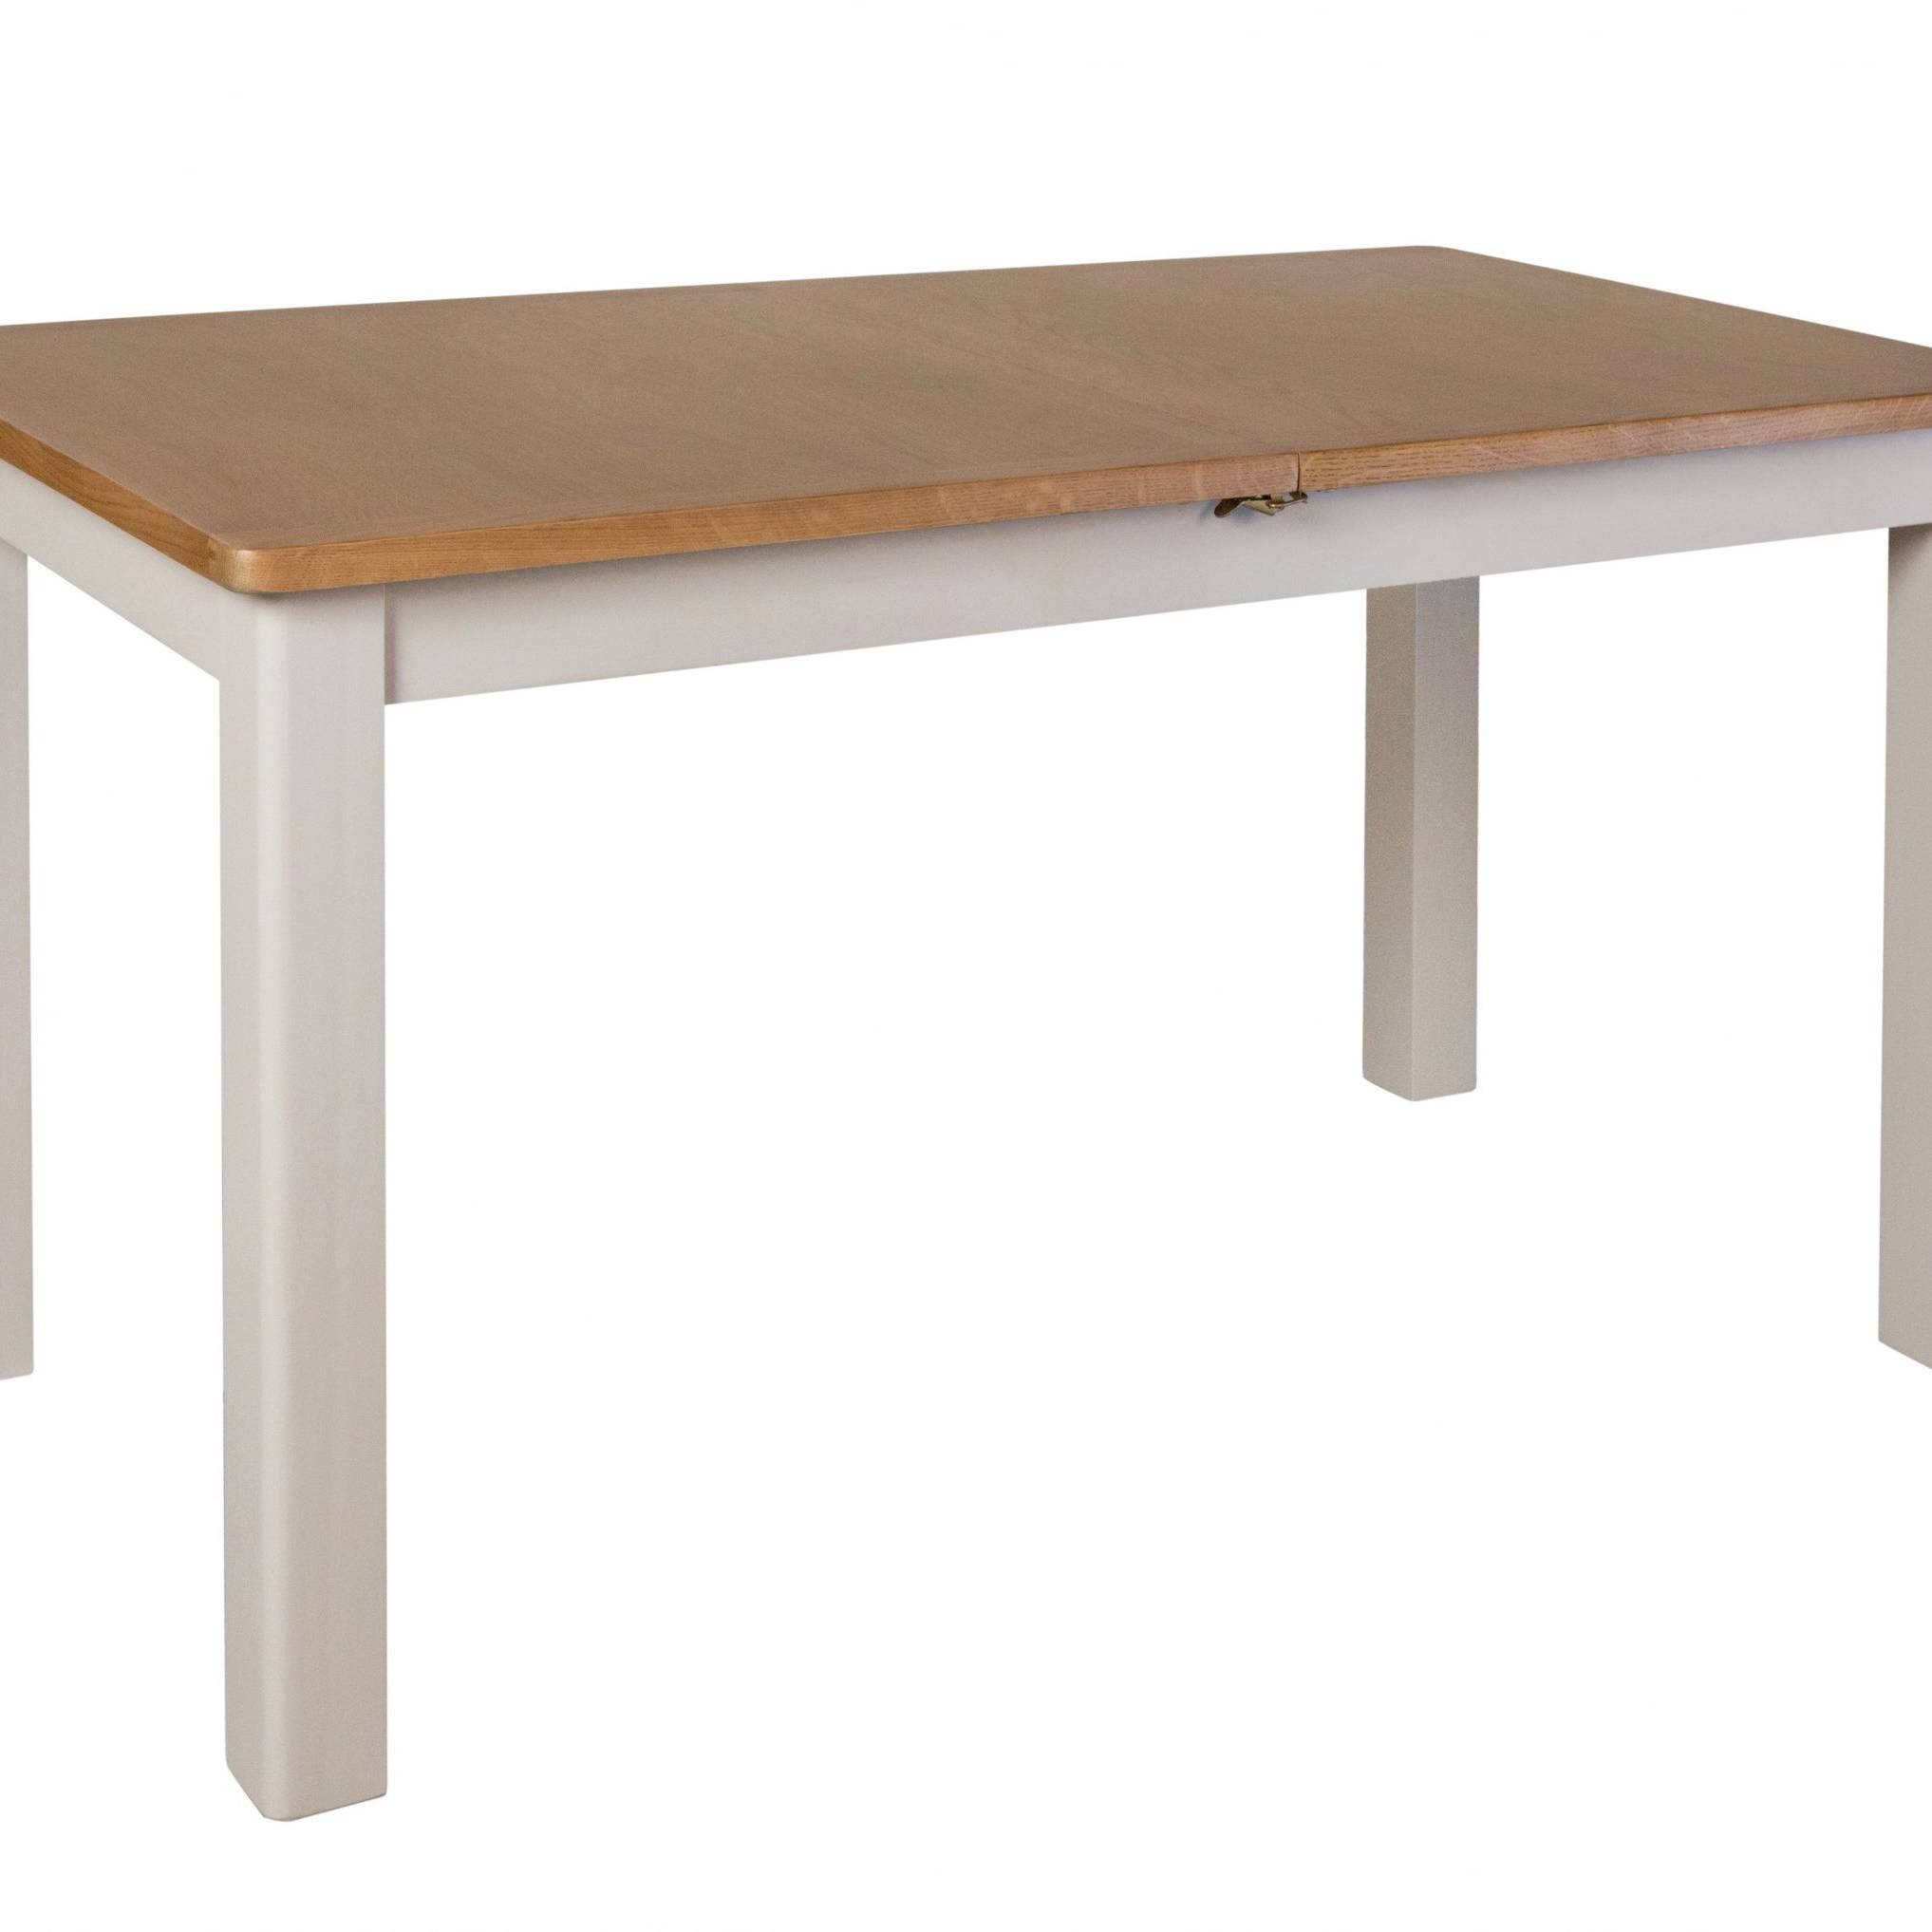 The Truffle - 1.2m Extending Table